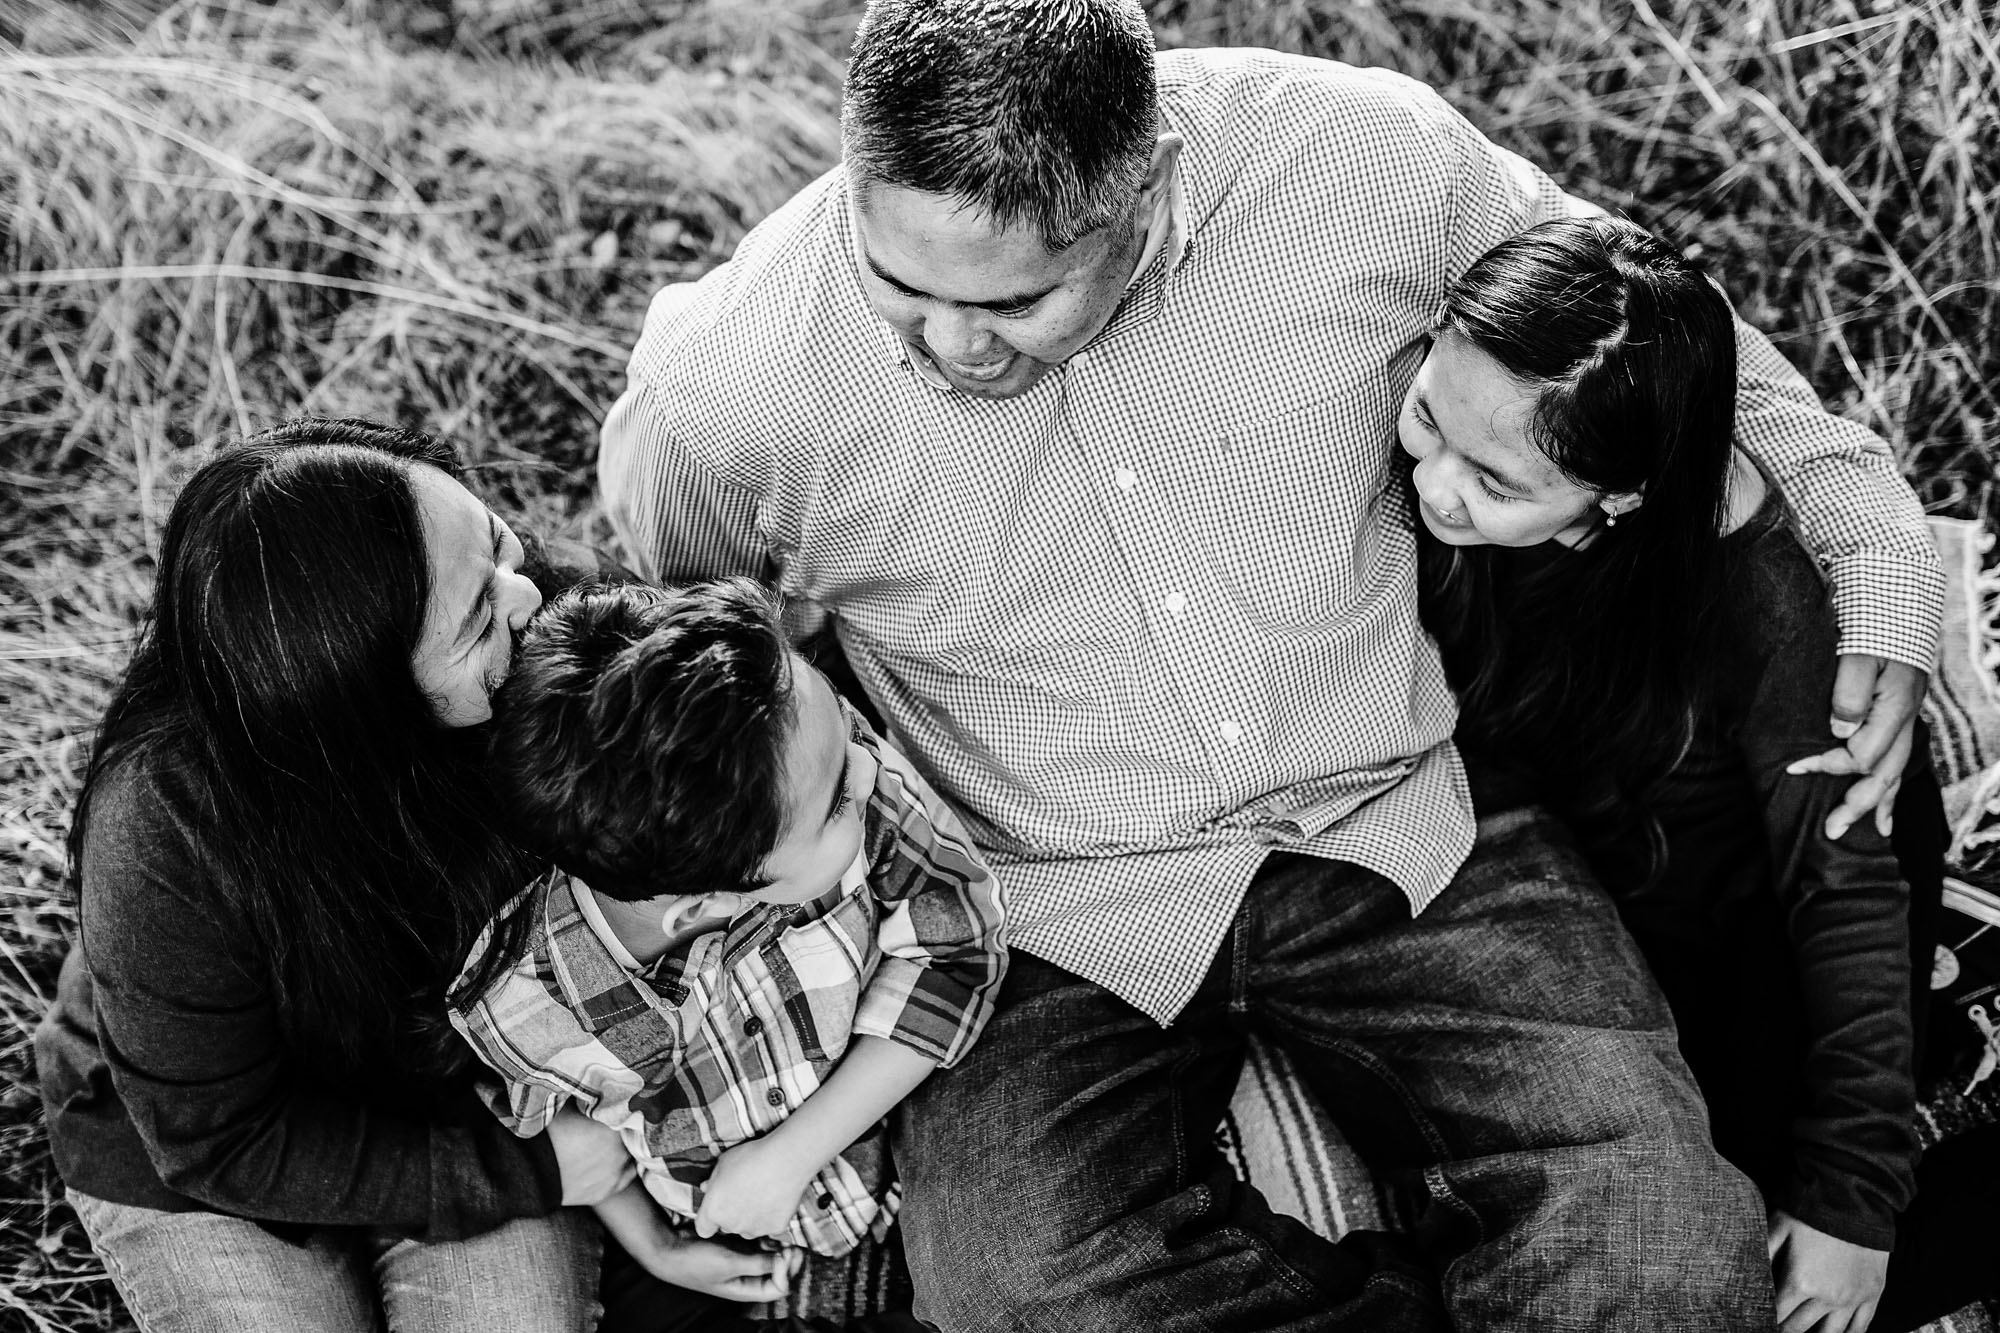 A family of four wrap their arms around each other during a lifestyle photo shoot in Roseville, California with Amy Wright Photography.